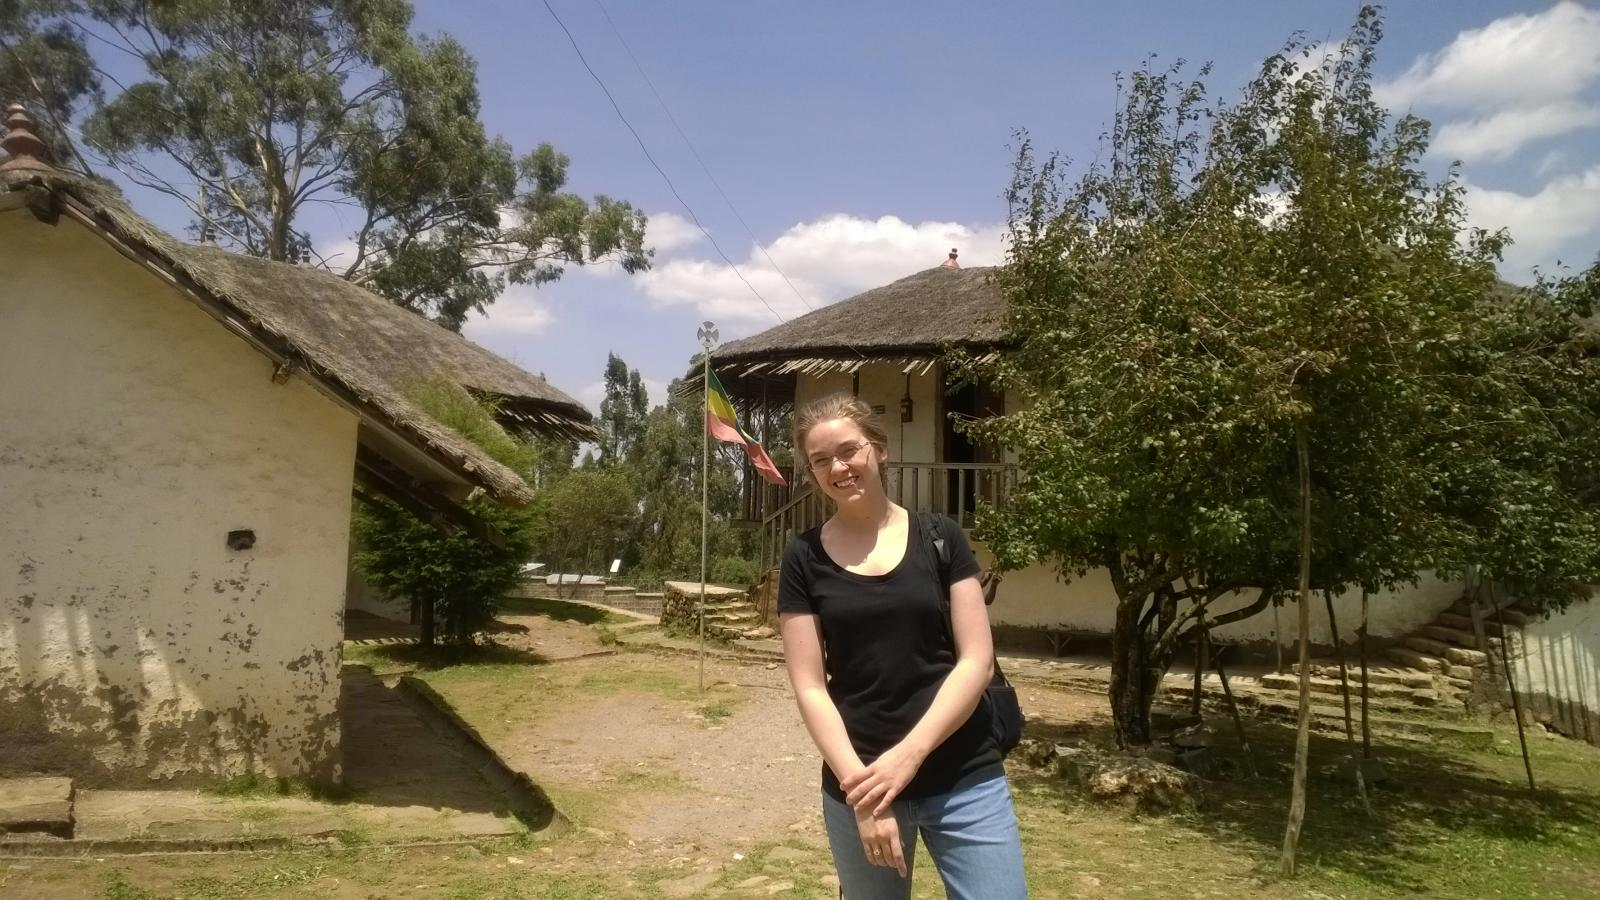 PhD Student Caitlin Clary doing field work in Ethiopia